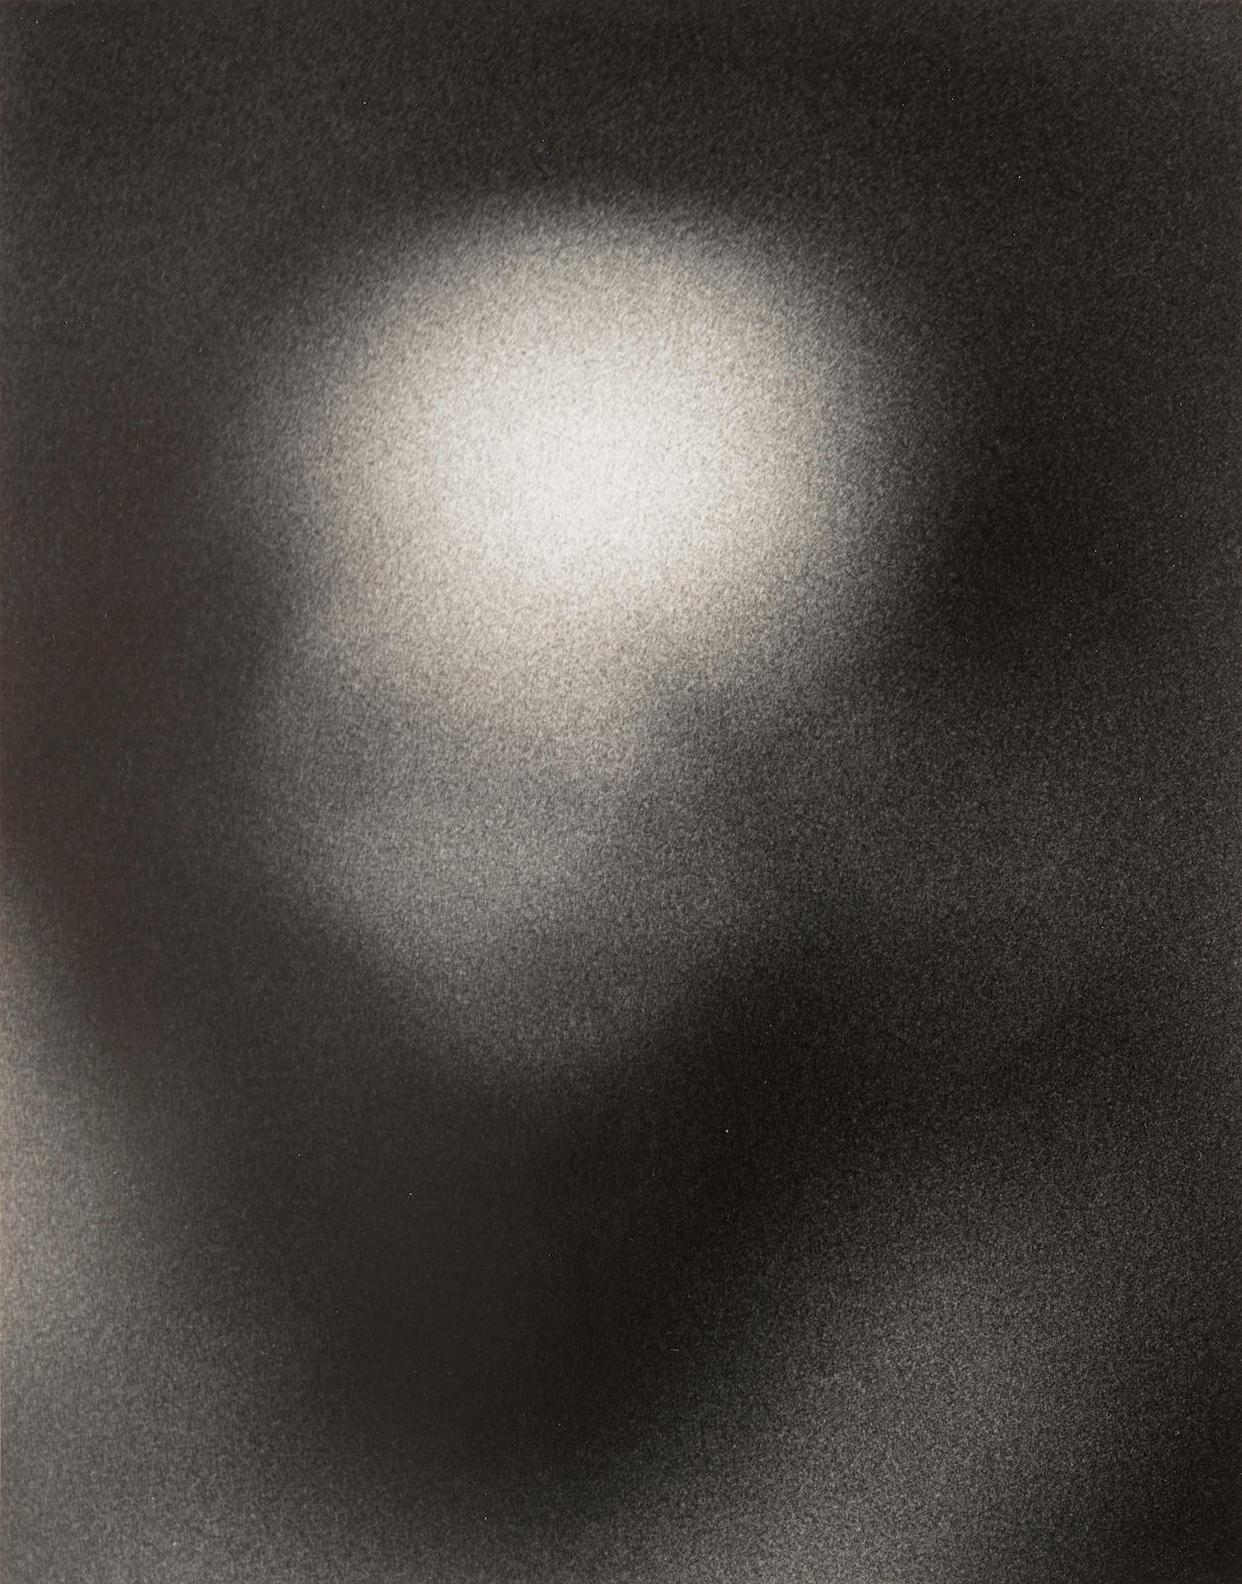 Roy DeCarava-Face Out Of Focus-1960